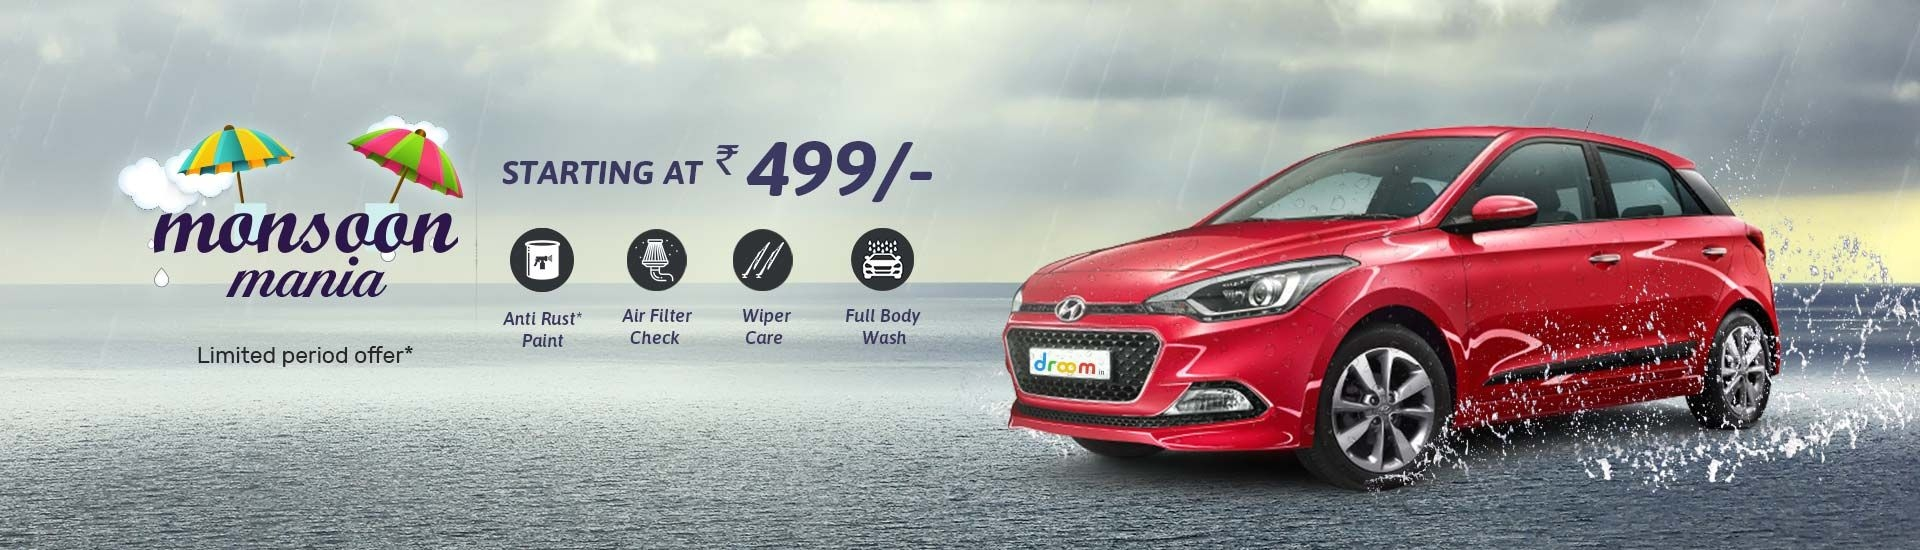 Monsoon Offers on Cars Services   Droom